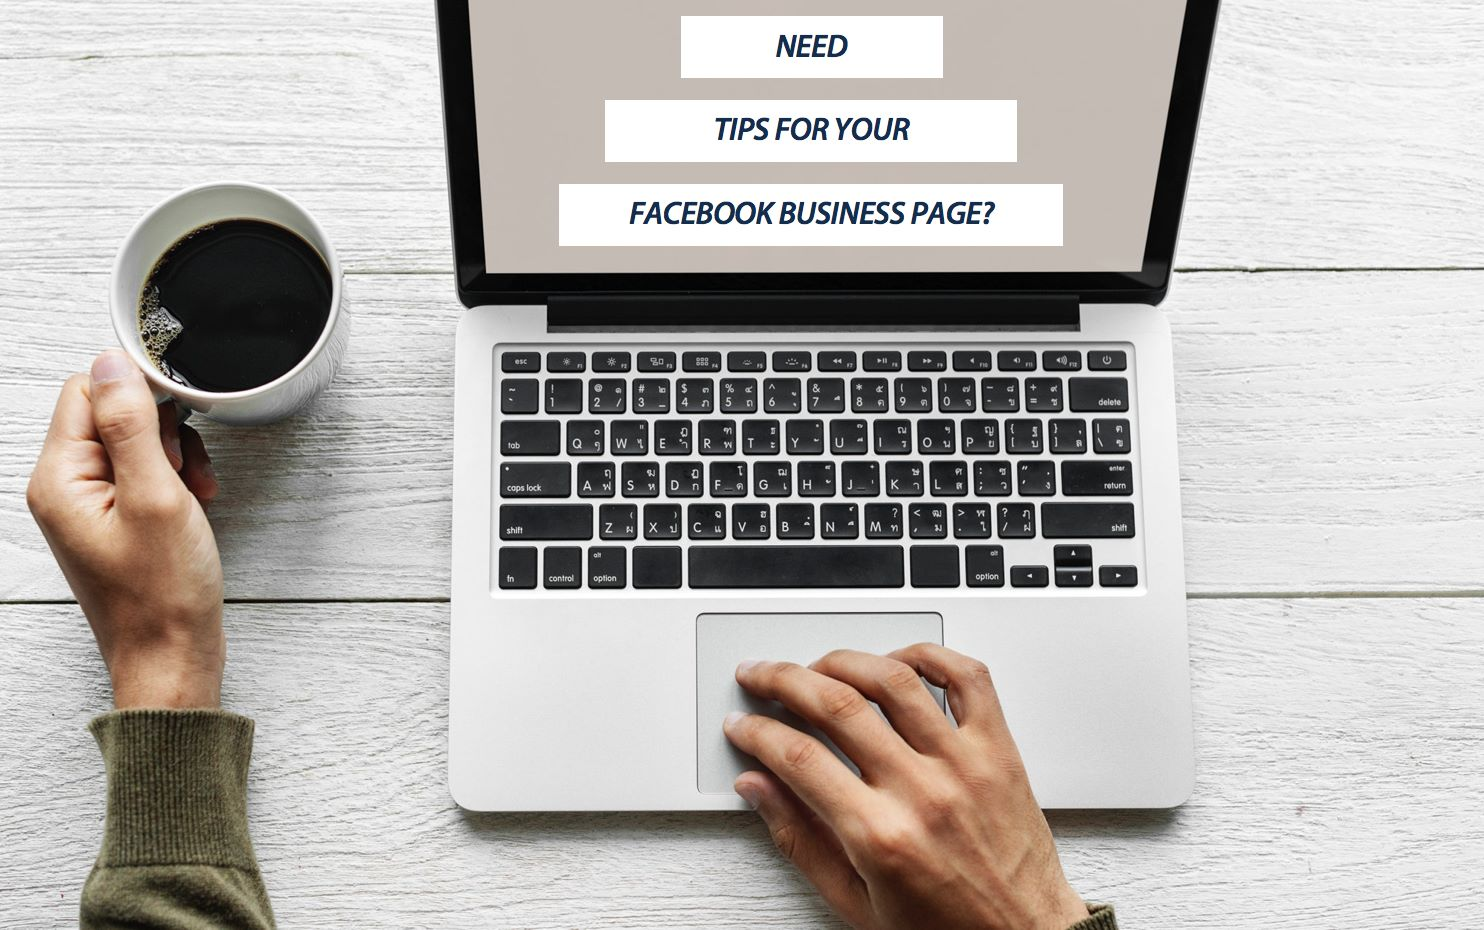 NEED TIPS FOR YOUR BUSINESS FACEBOOK PAGE?